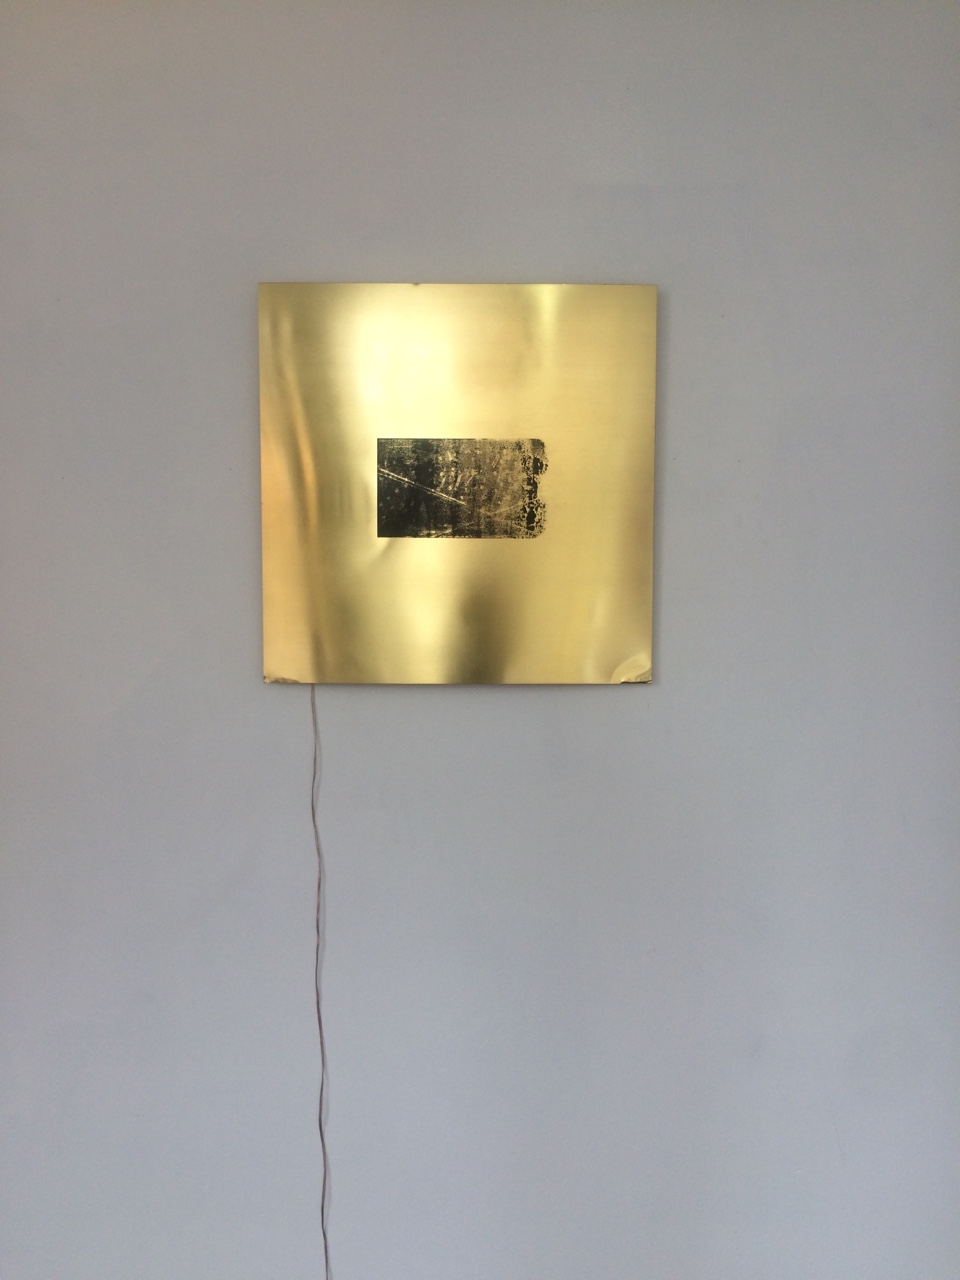 Alejandro T. Acierto,Taft's own, 2016 Screenprint on brass, surface mount transducer Part of Focusing (Vol. II), a solo show at Corner in Chicago. On view until November 15, 2016!